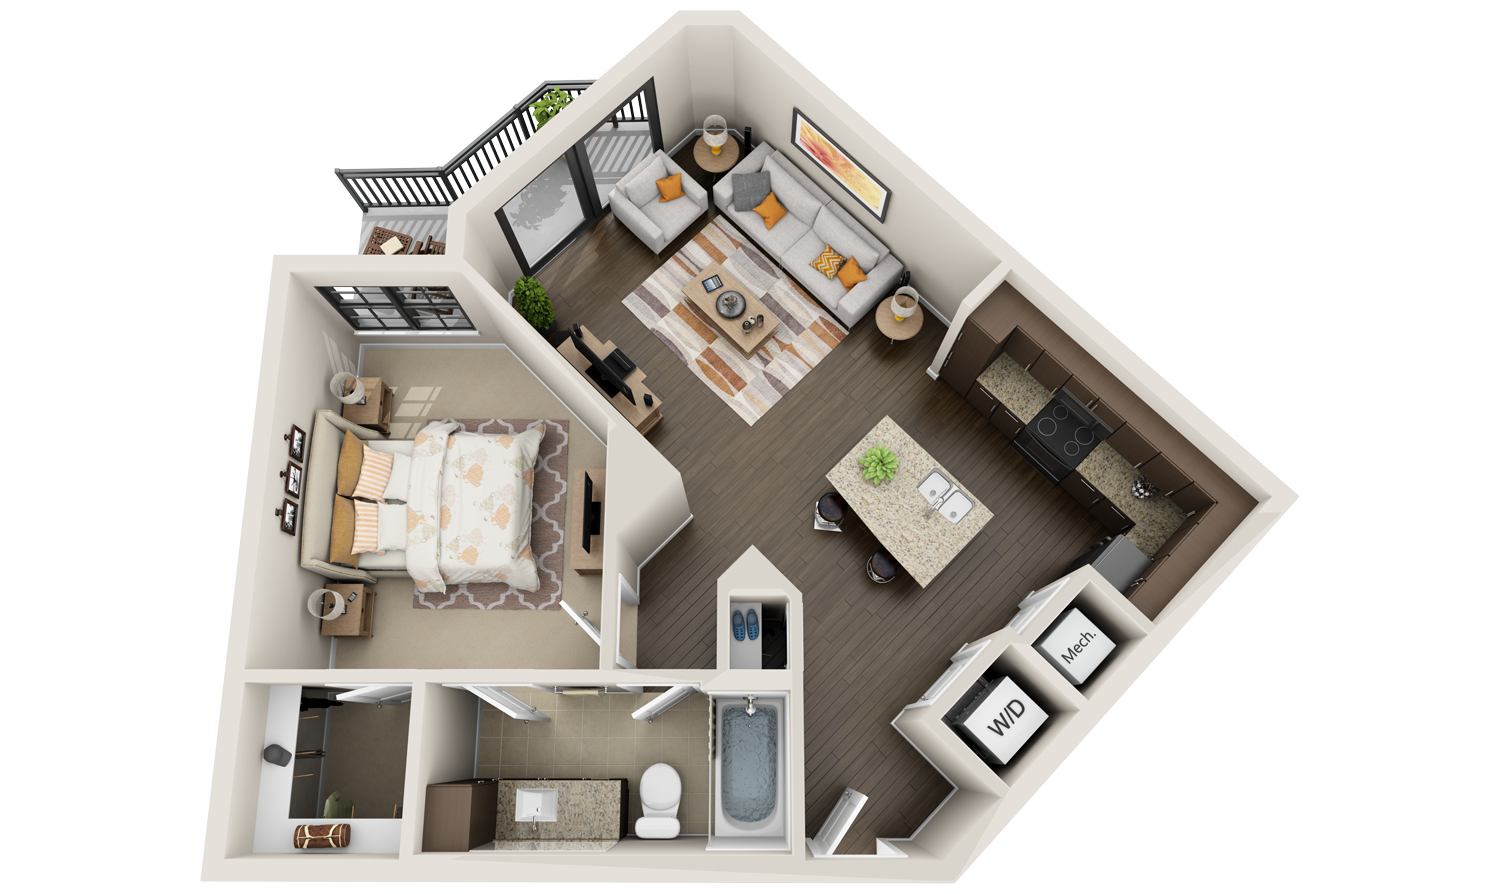 3d floor plans for apartments get your quote now for Plan 3d online home design free